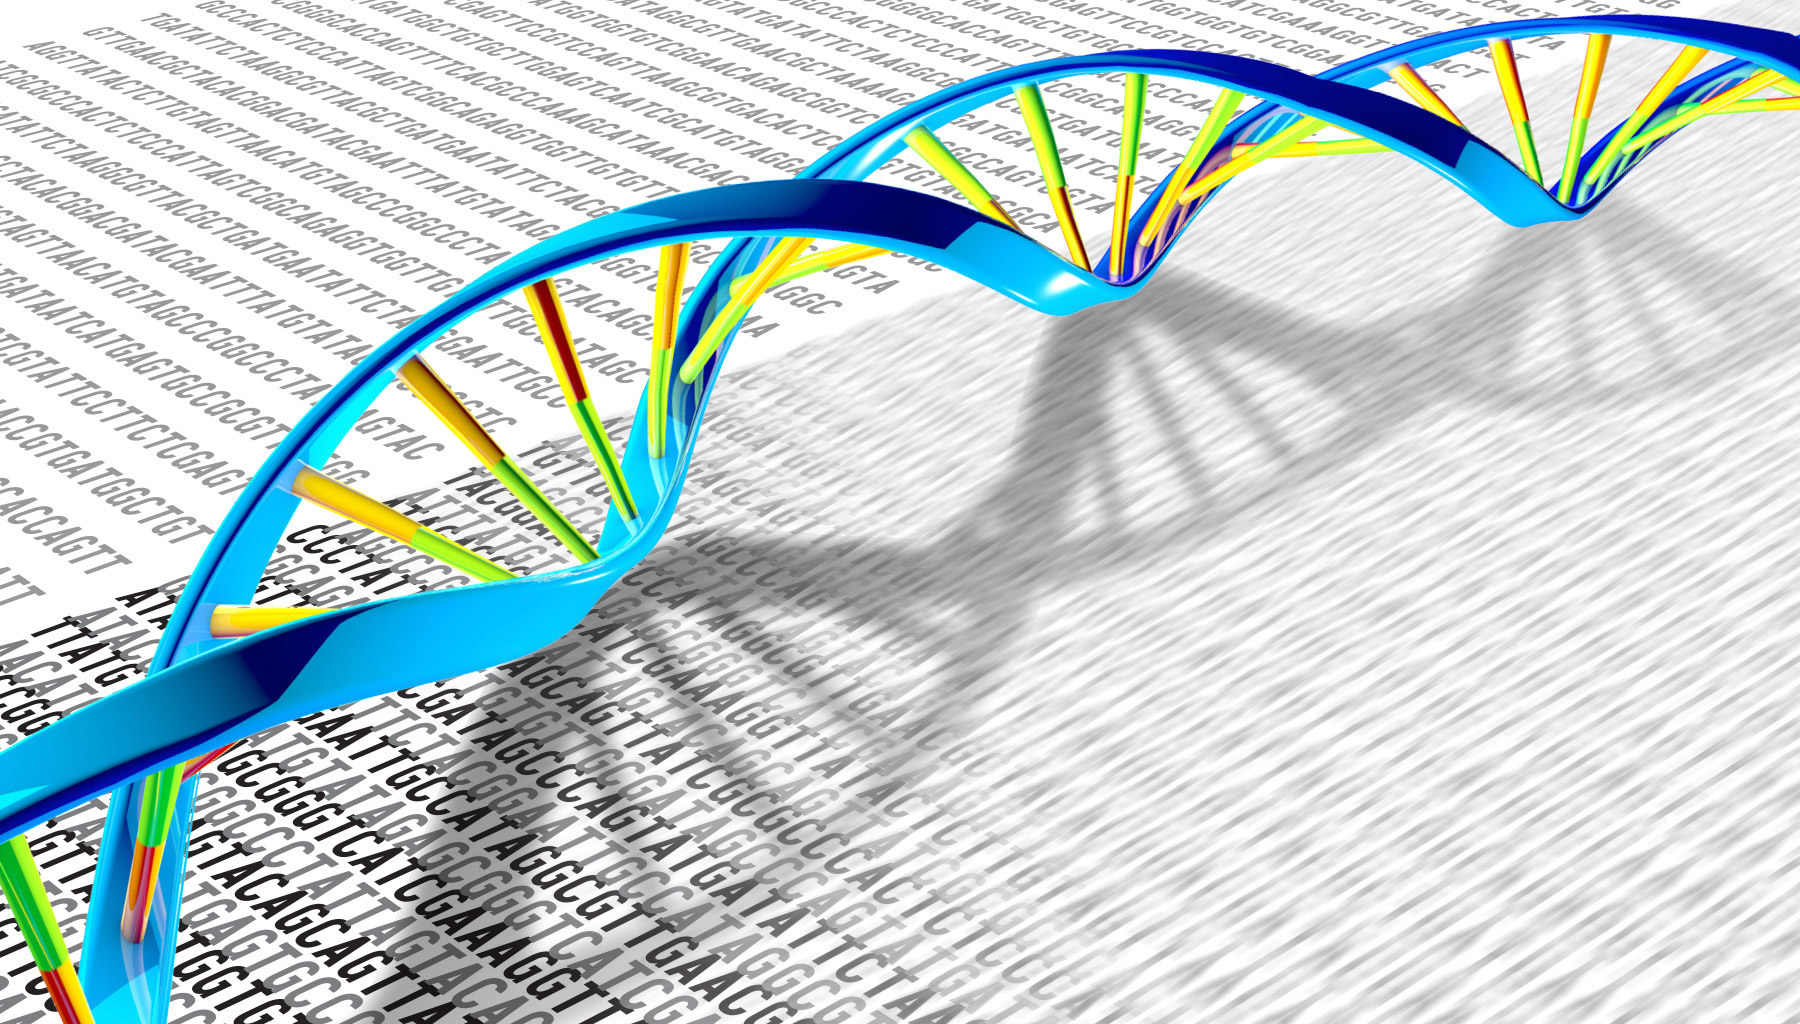 Toronto's DNAstack launches genomic cloud platform in collaboration with Google